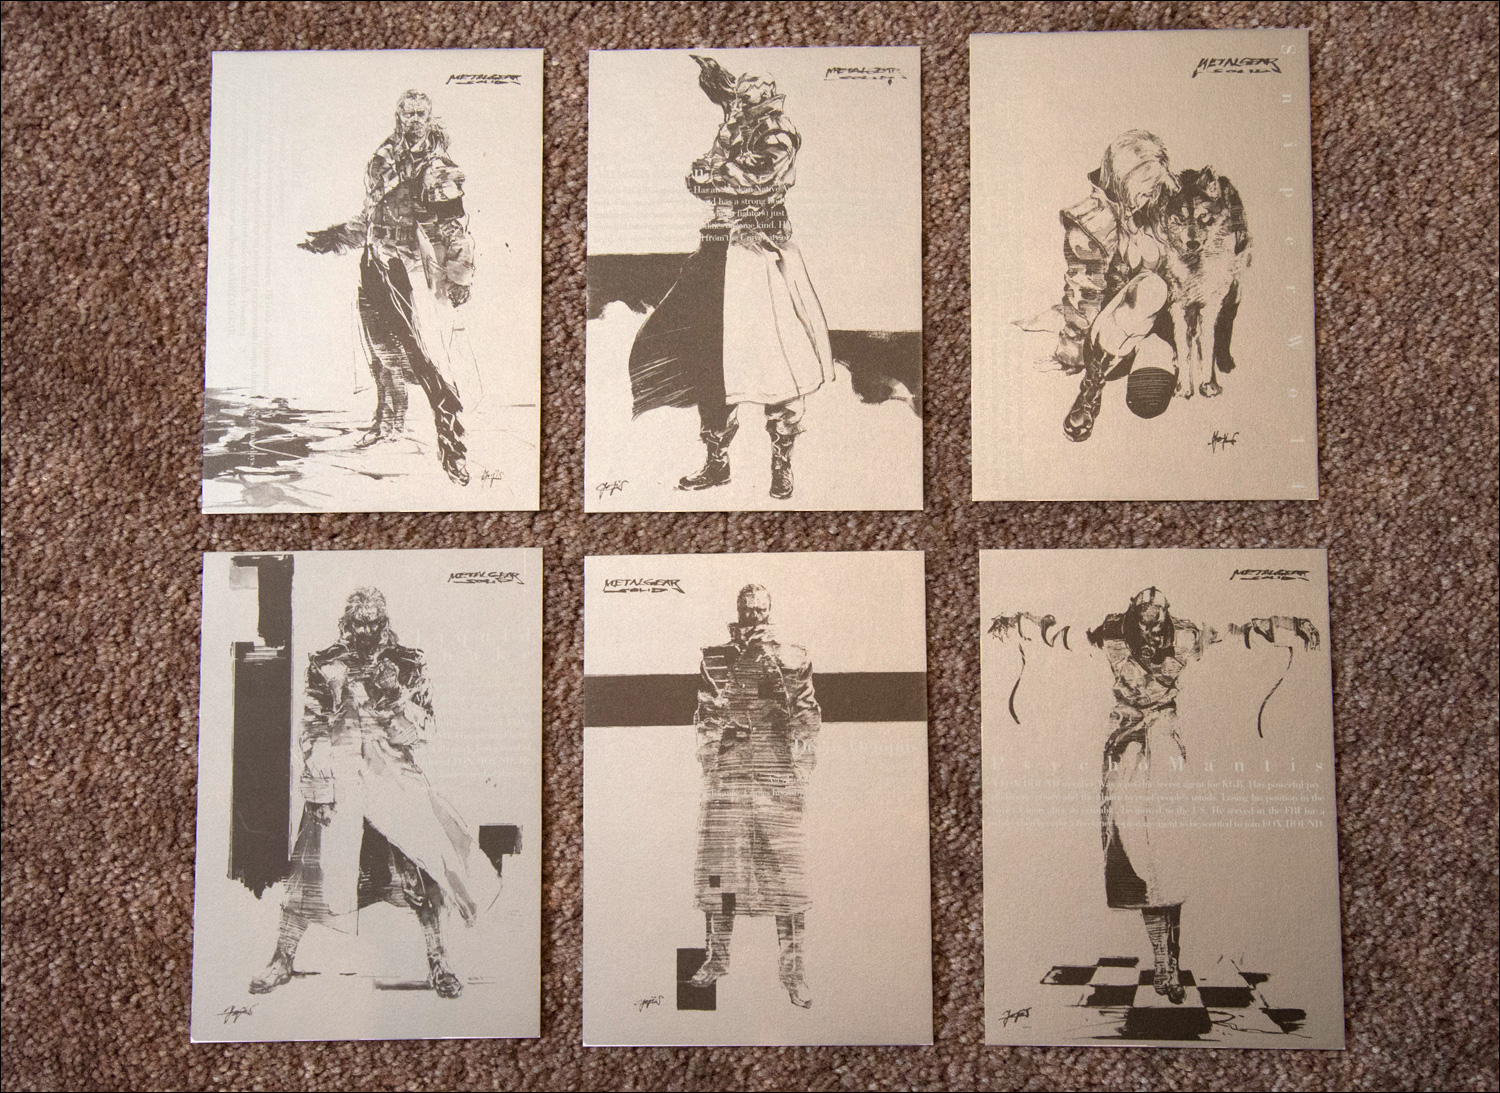 Metal-Gear-Solid-Premium-Package-Postcards